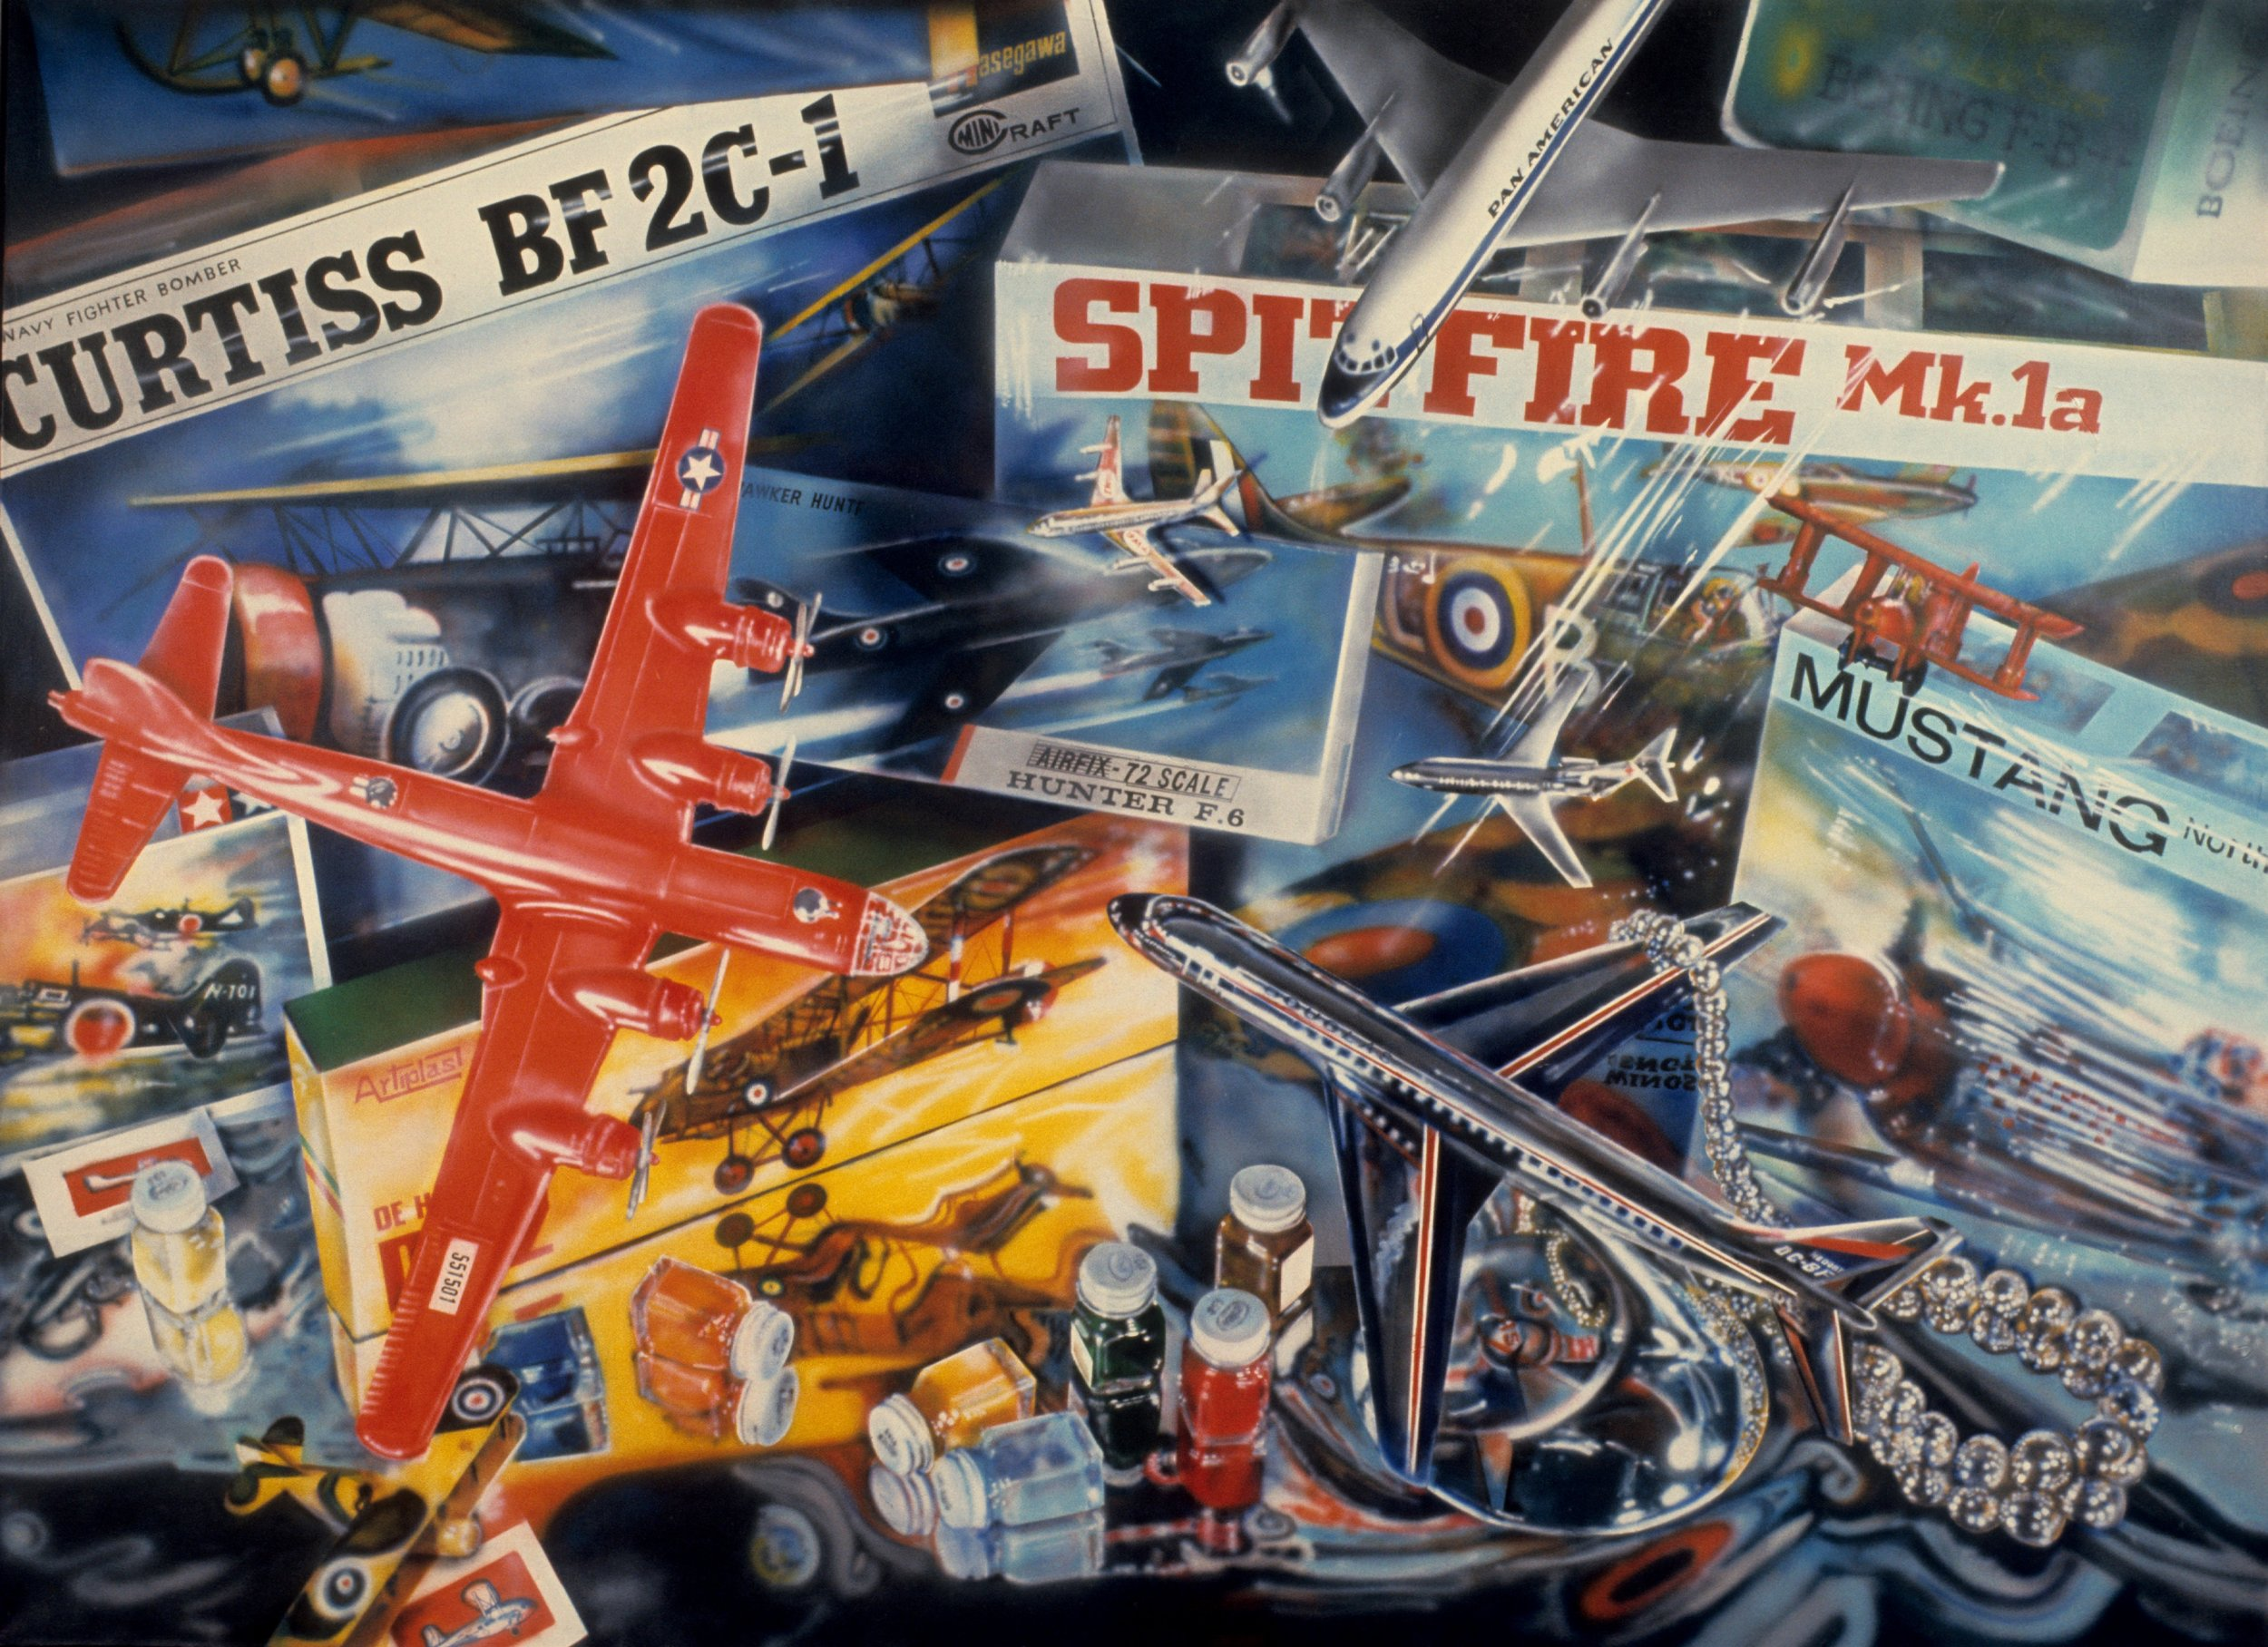 Flack_Spitfire_1973_acrylic on canvas.jpg